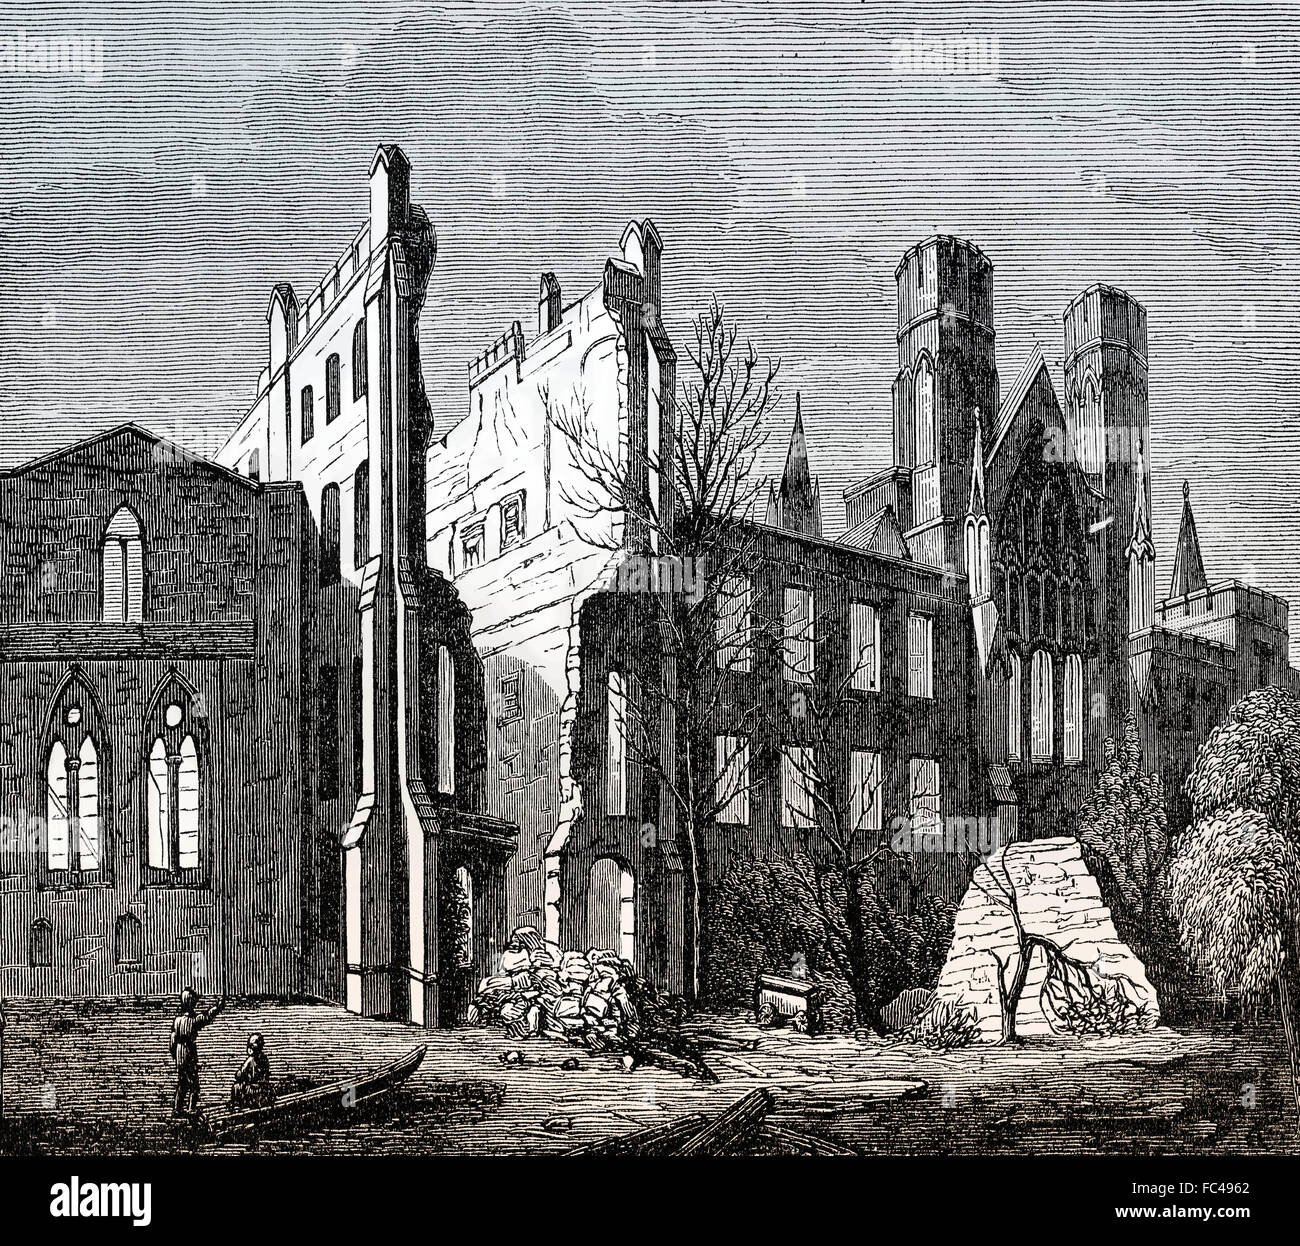 The House of Parliament, after the Great Fire in 1834, London, England - Stock Image